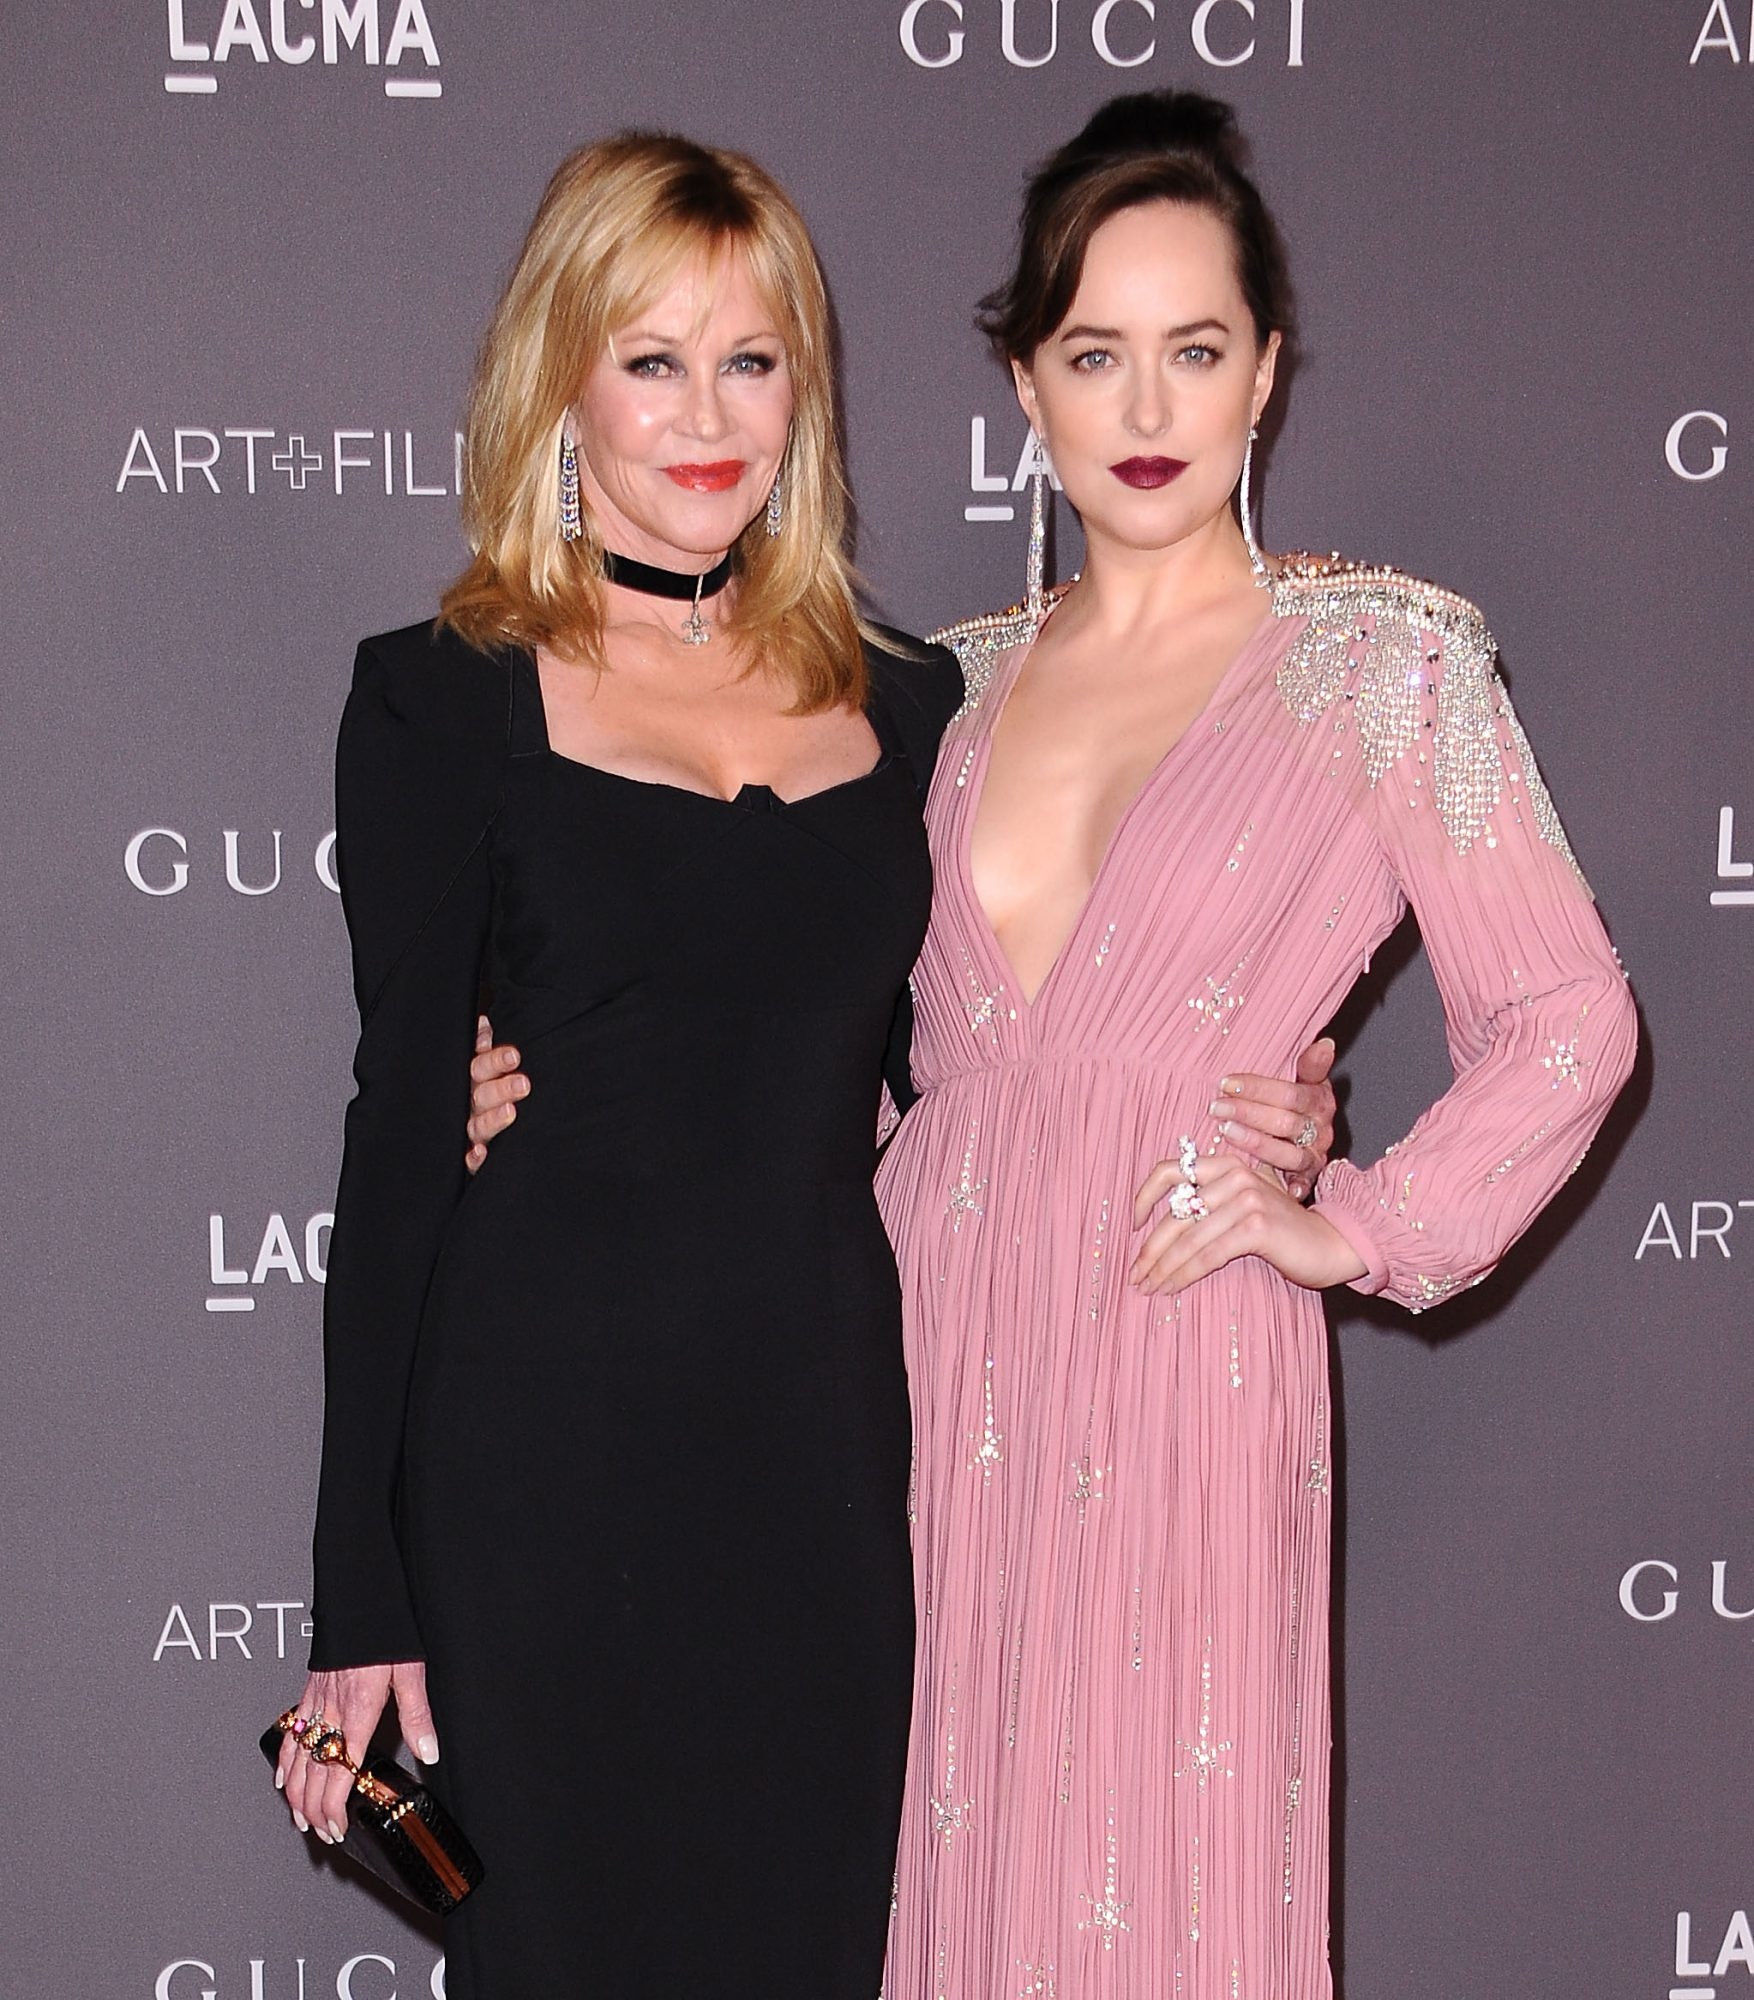 Melanie Griffith reveals she 'adores' daughter Dakota Johnson's boyfriend Chris Martin